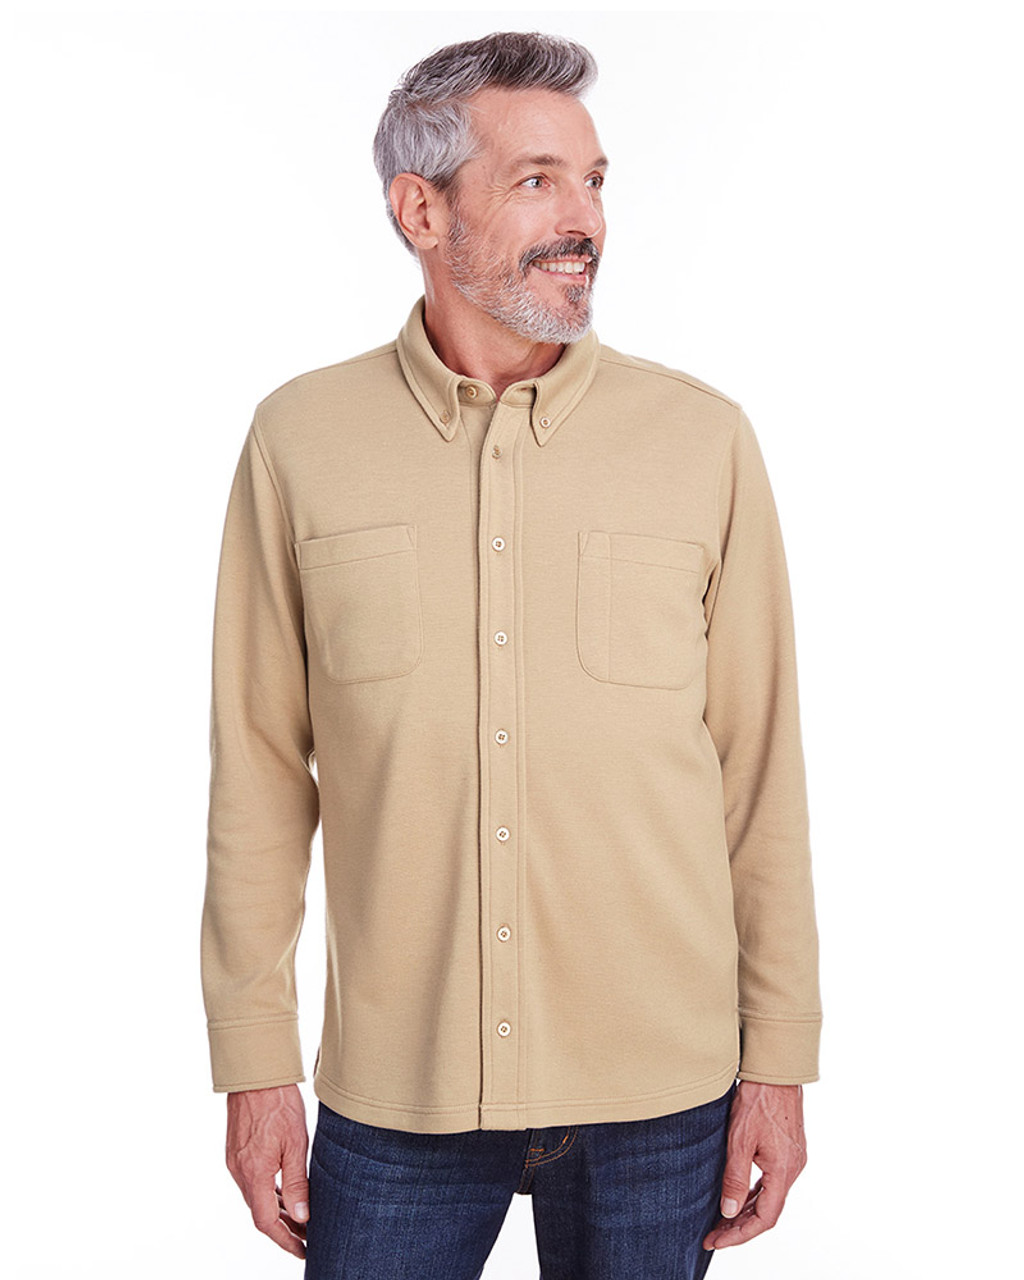 Khaki - M708 Harriton Adult StainBloc™ Pique Fleece Shirt-Jacket | Blankclothing.ca